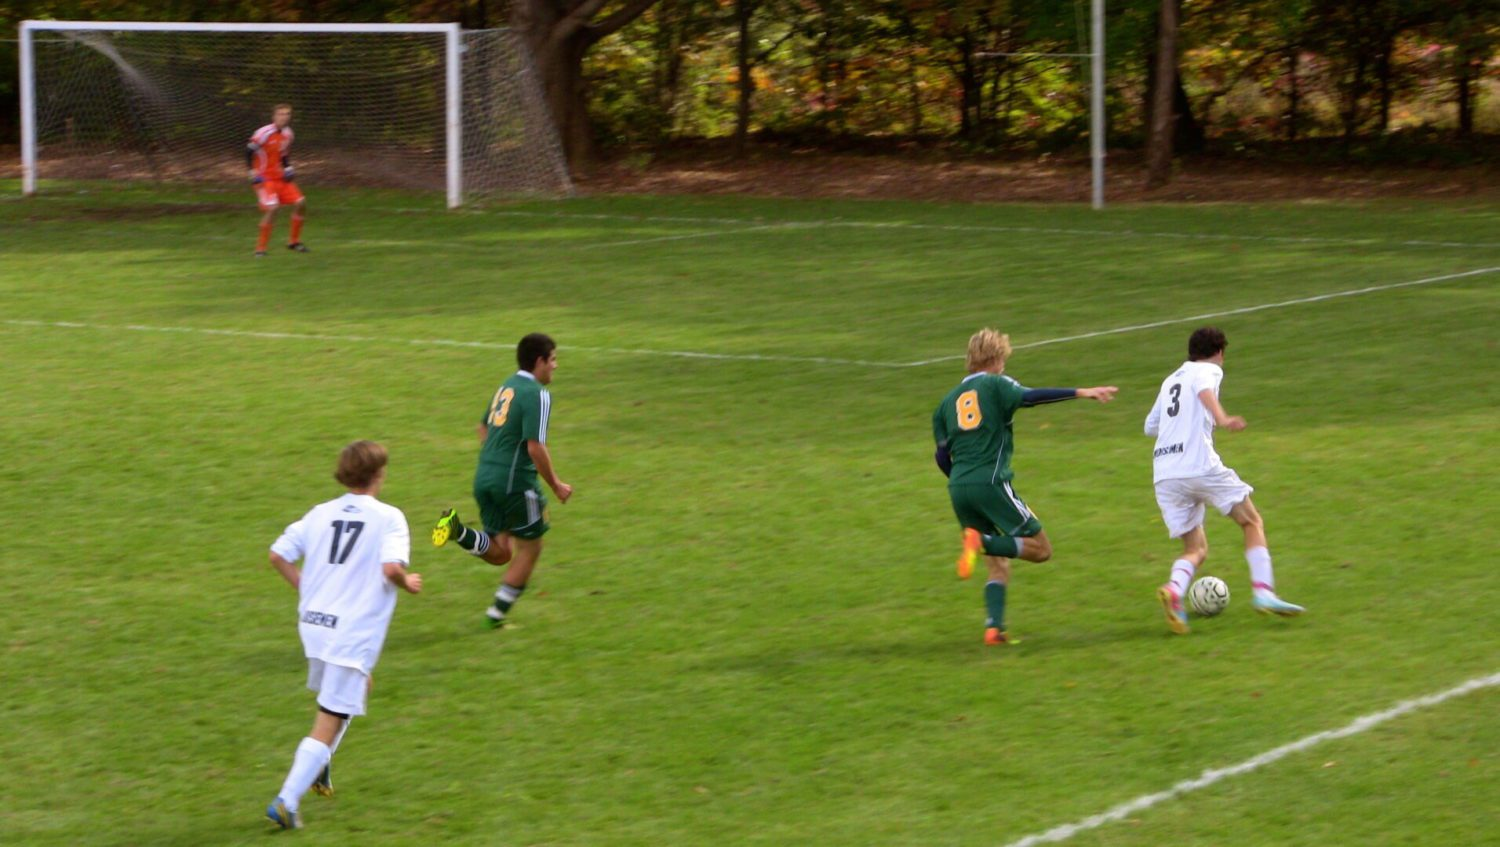 Muskegon Catholic avenges last year's loss with a 1-0 victory over North Muskegon in district soccer finals